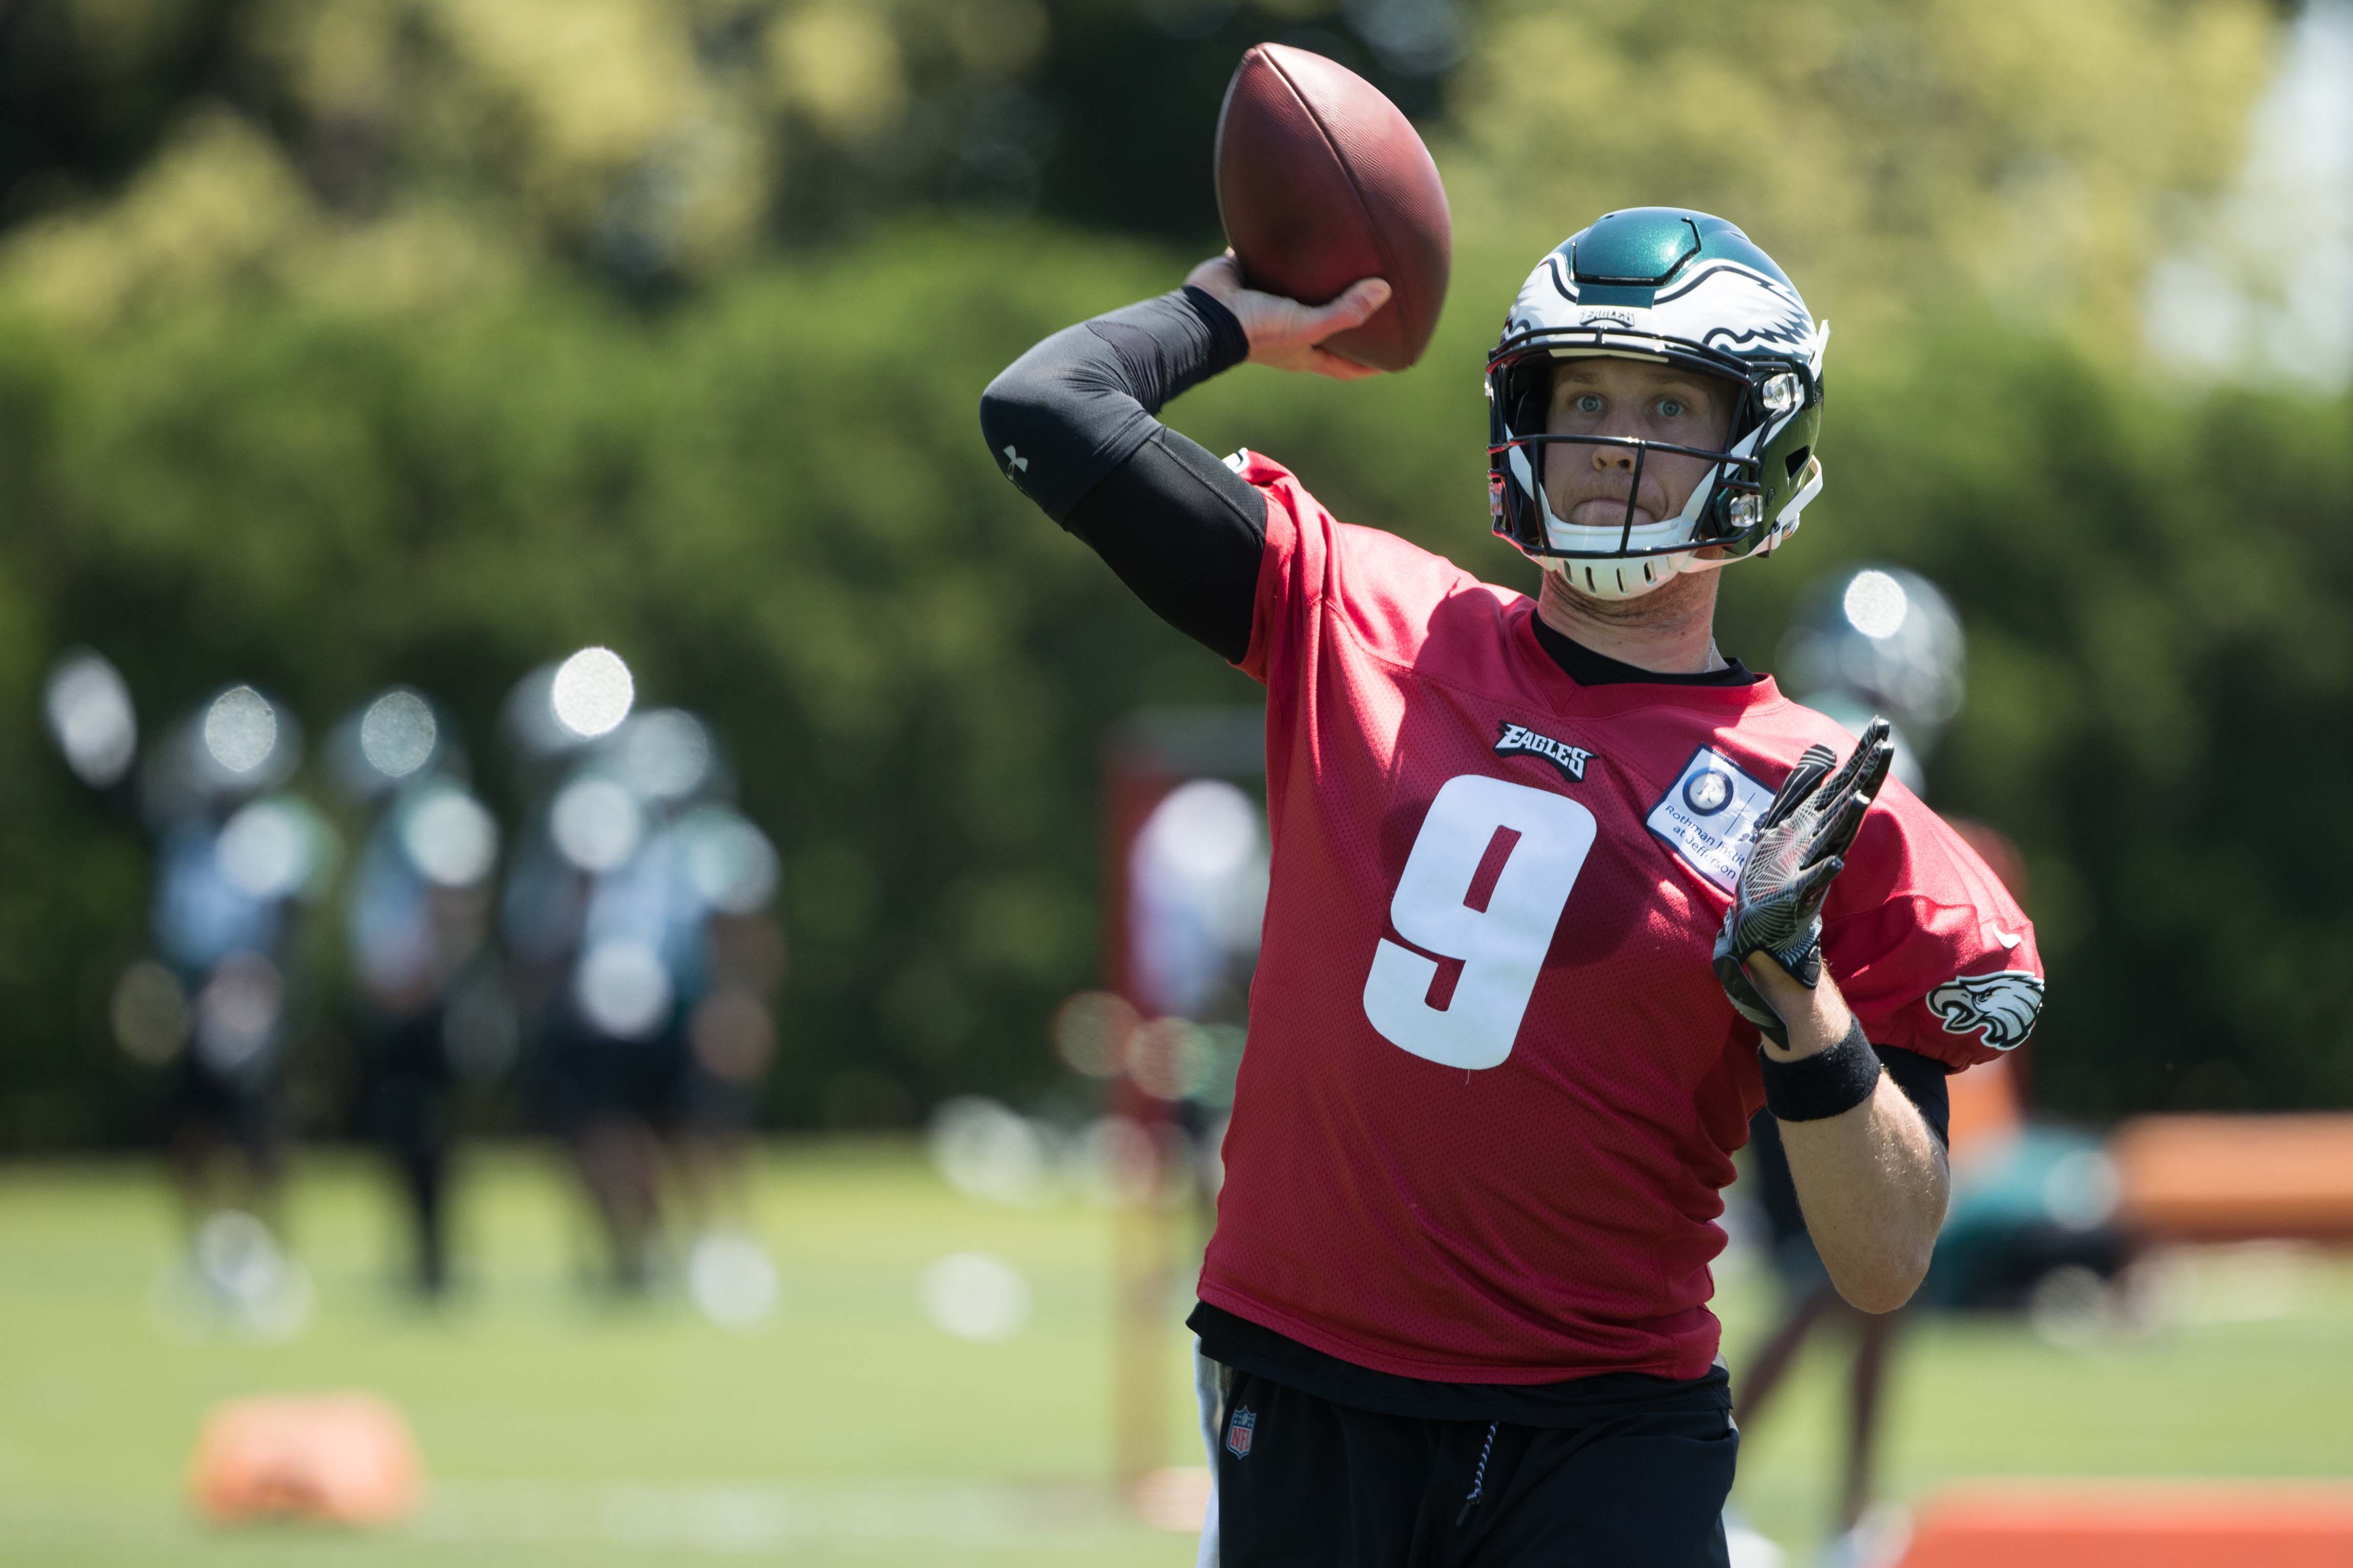 Eagles fans made Nick Foles the NFL's top merchandise seller from March to May